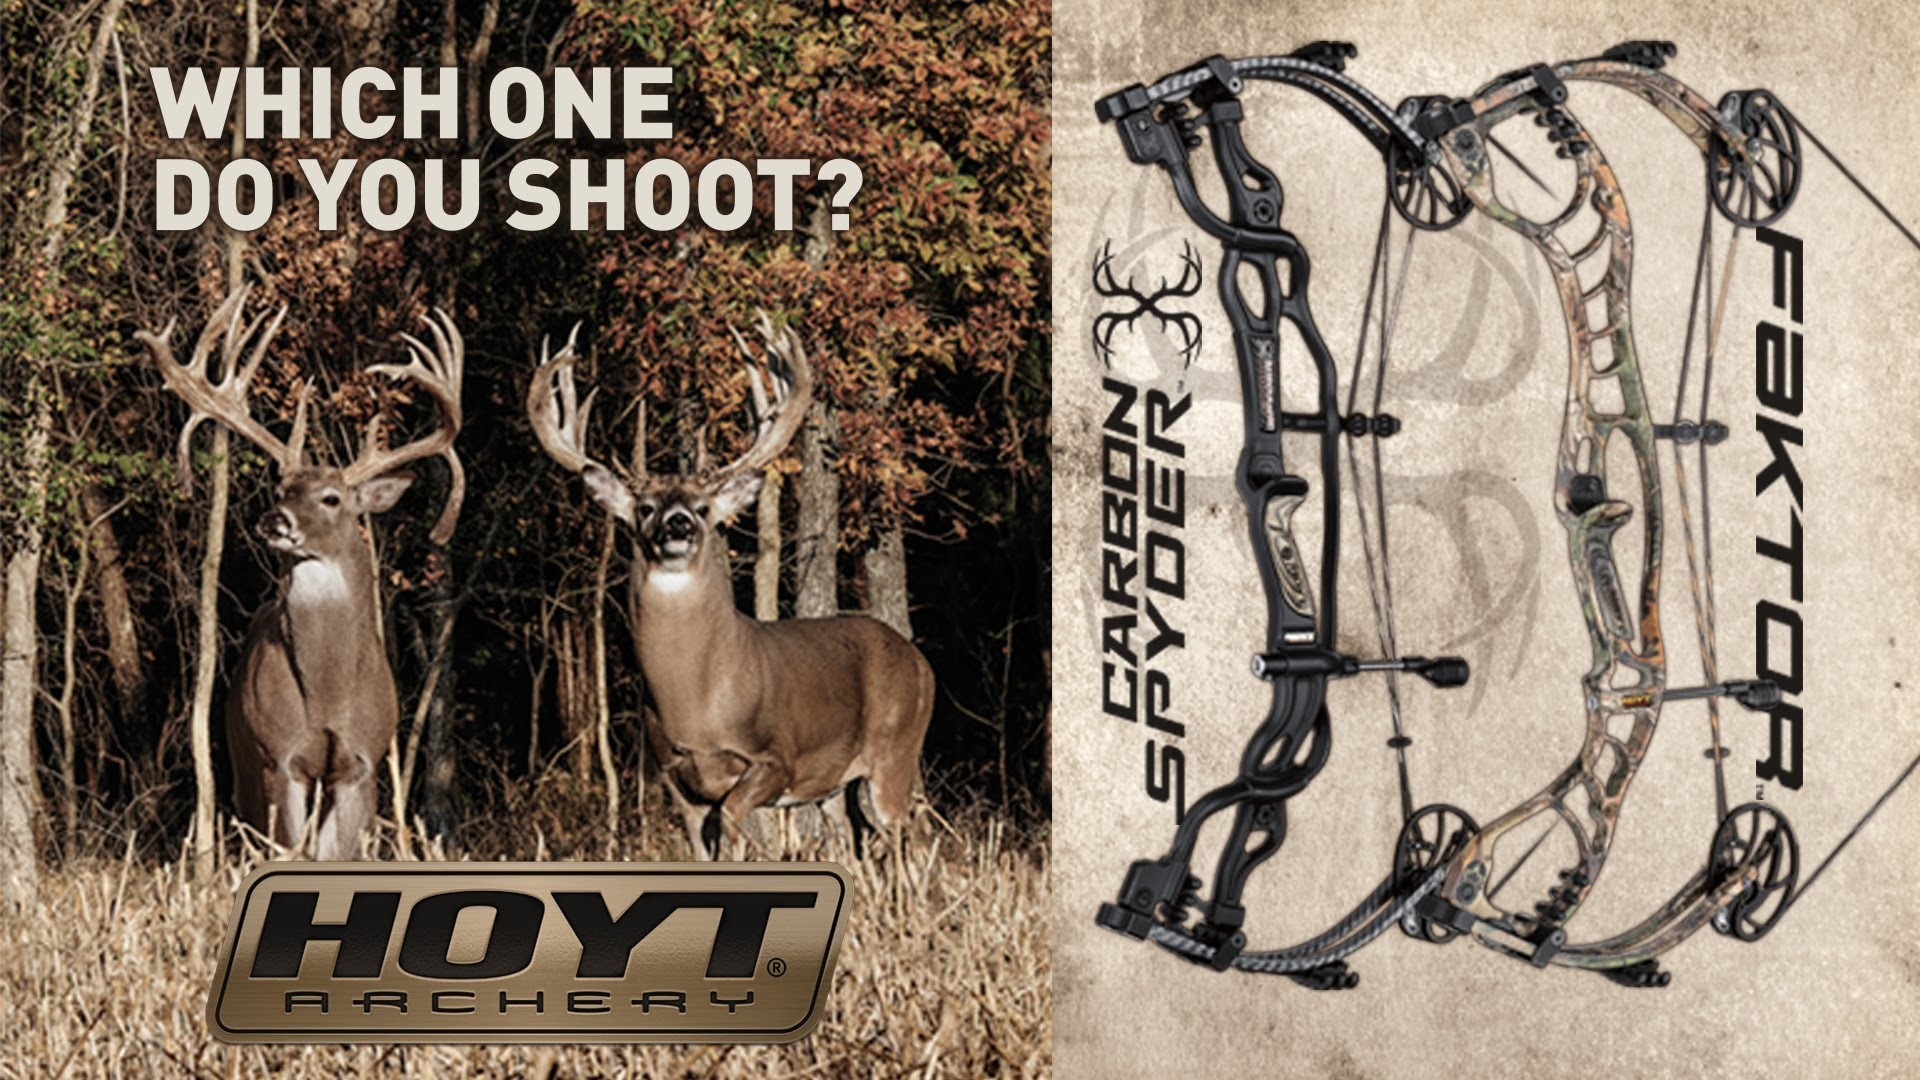 Res: 1920x1080, Hoyt Archery WHICH ONE DO YOU SHOOT